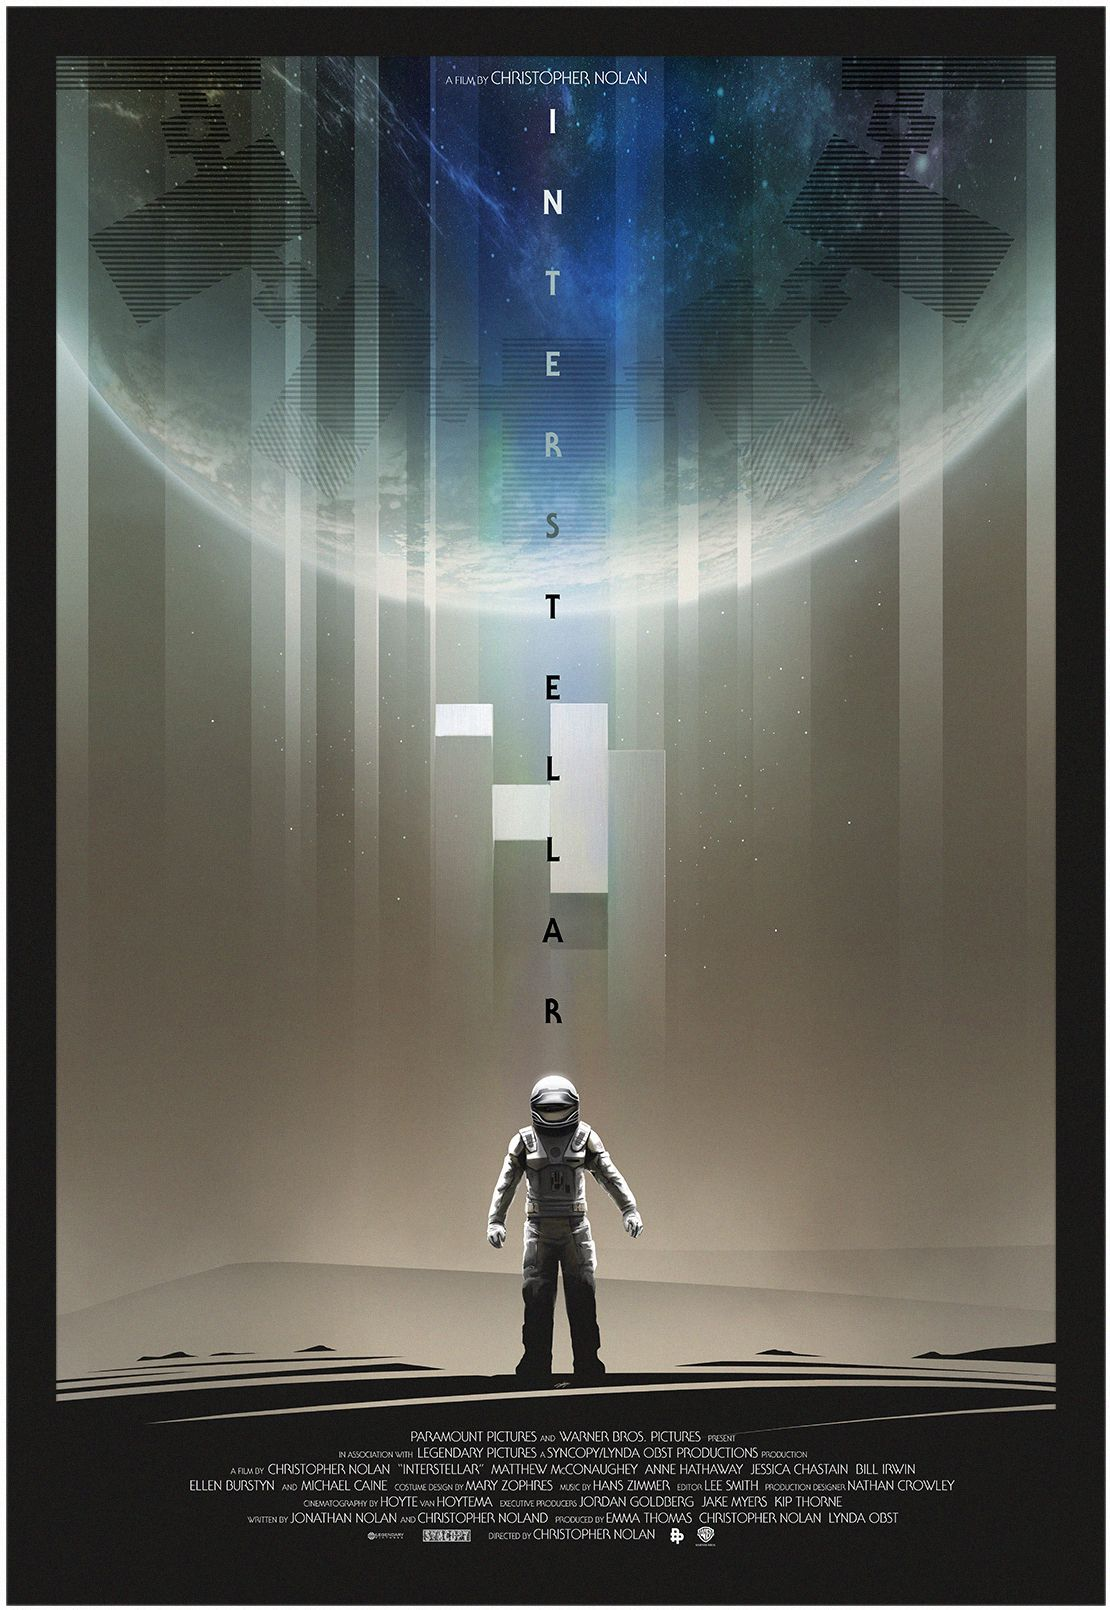 "Interstellar - Andy Fairhurst ---- Poster Posse Project #11 Heads For The Stars With A Tribute To Christopher Nolan's Sci-Fi Adventure: ""Interstellar"" (2014-09)"